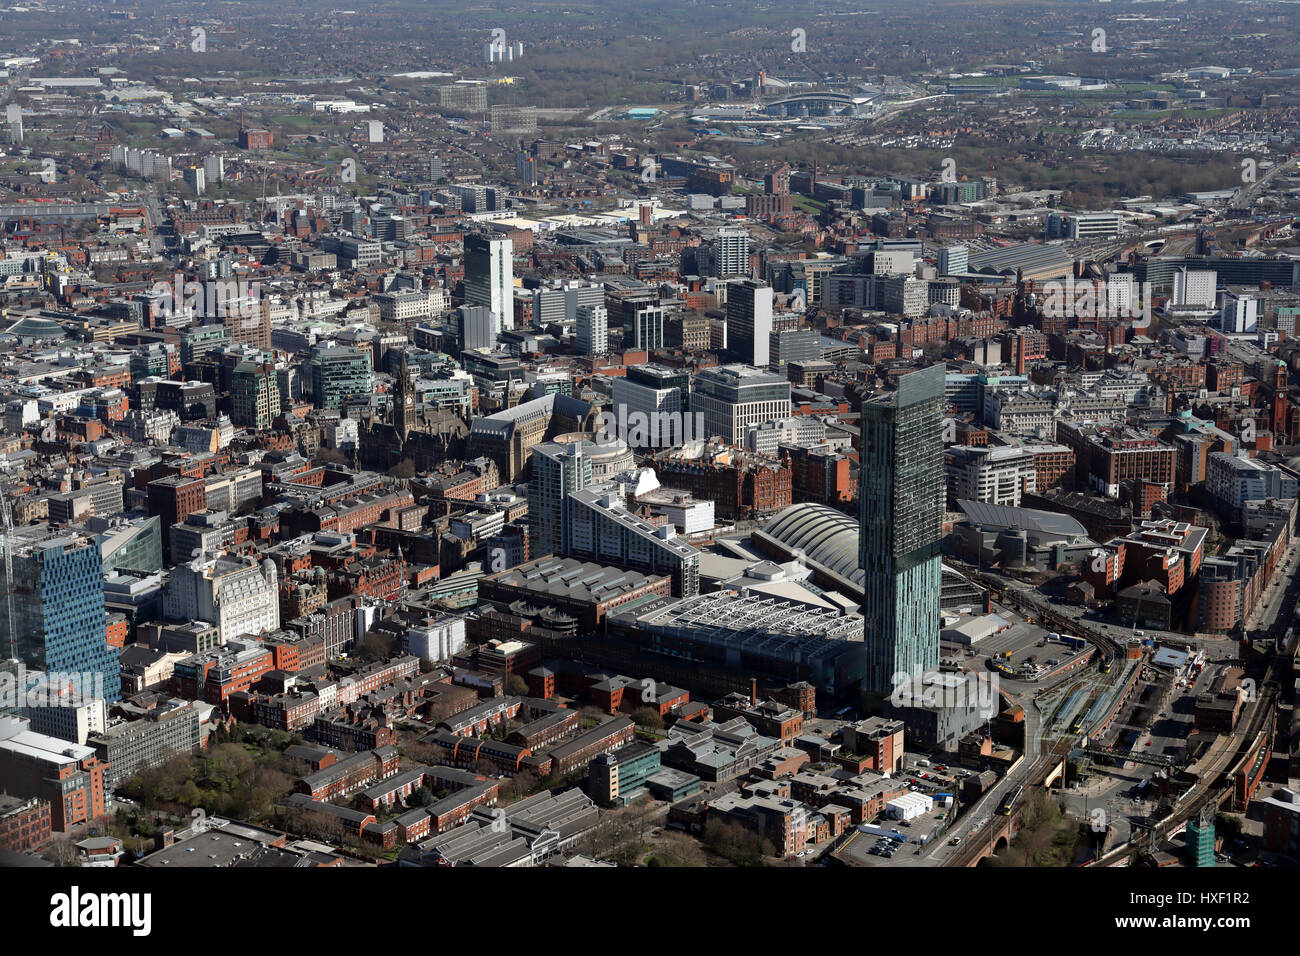 aerial view of Beetham Tower & Manchester city centre, UK - Stock Image